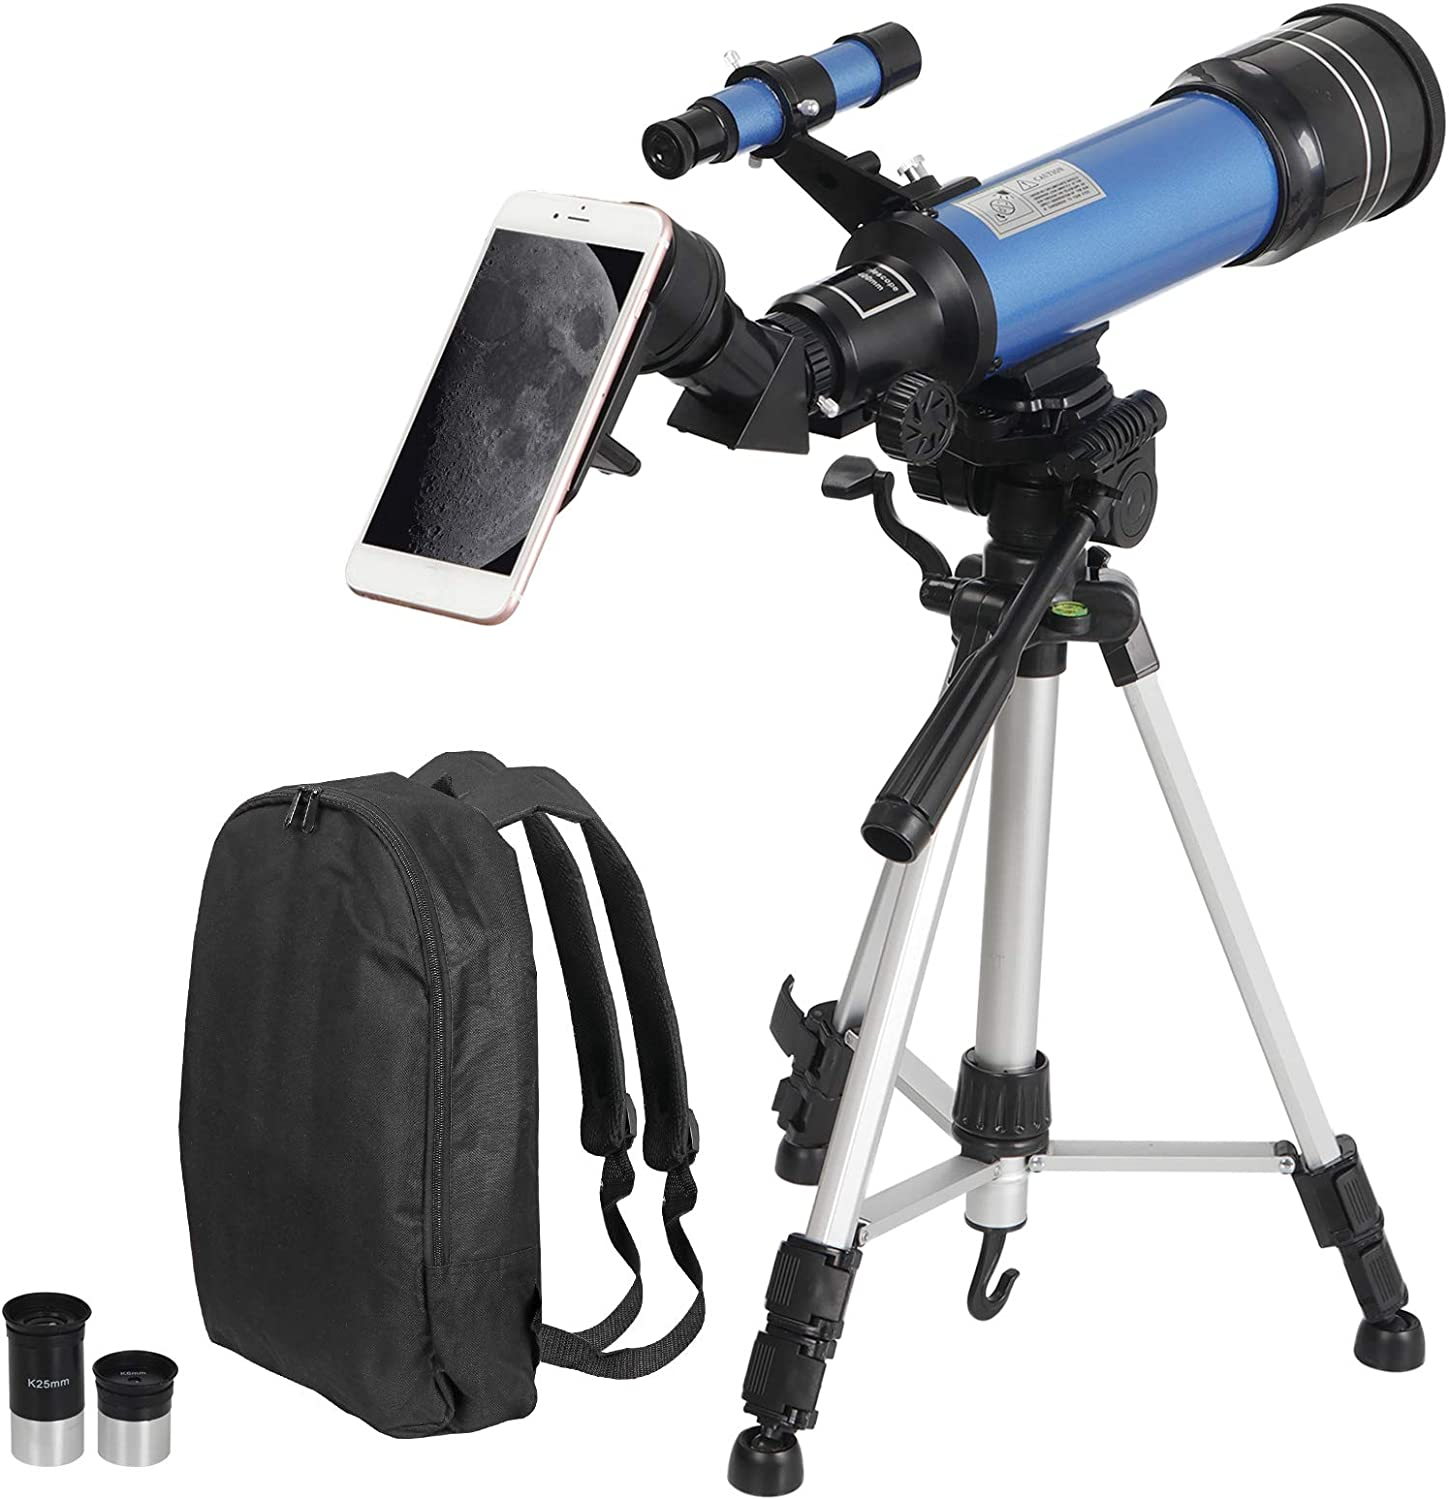 Portable Travel Telescope with Carry Bag ZENY Telescope 70mm Aperture 400mm AZ Mount Astronomical Refractor Telescope for Kids Beginners Smartphone Adapter